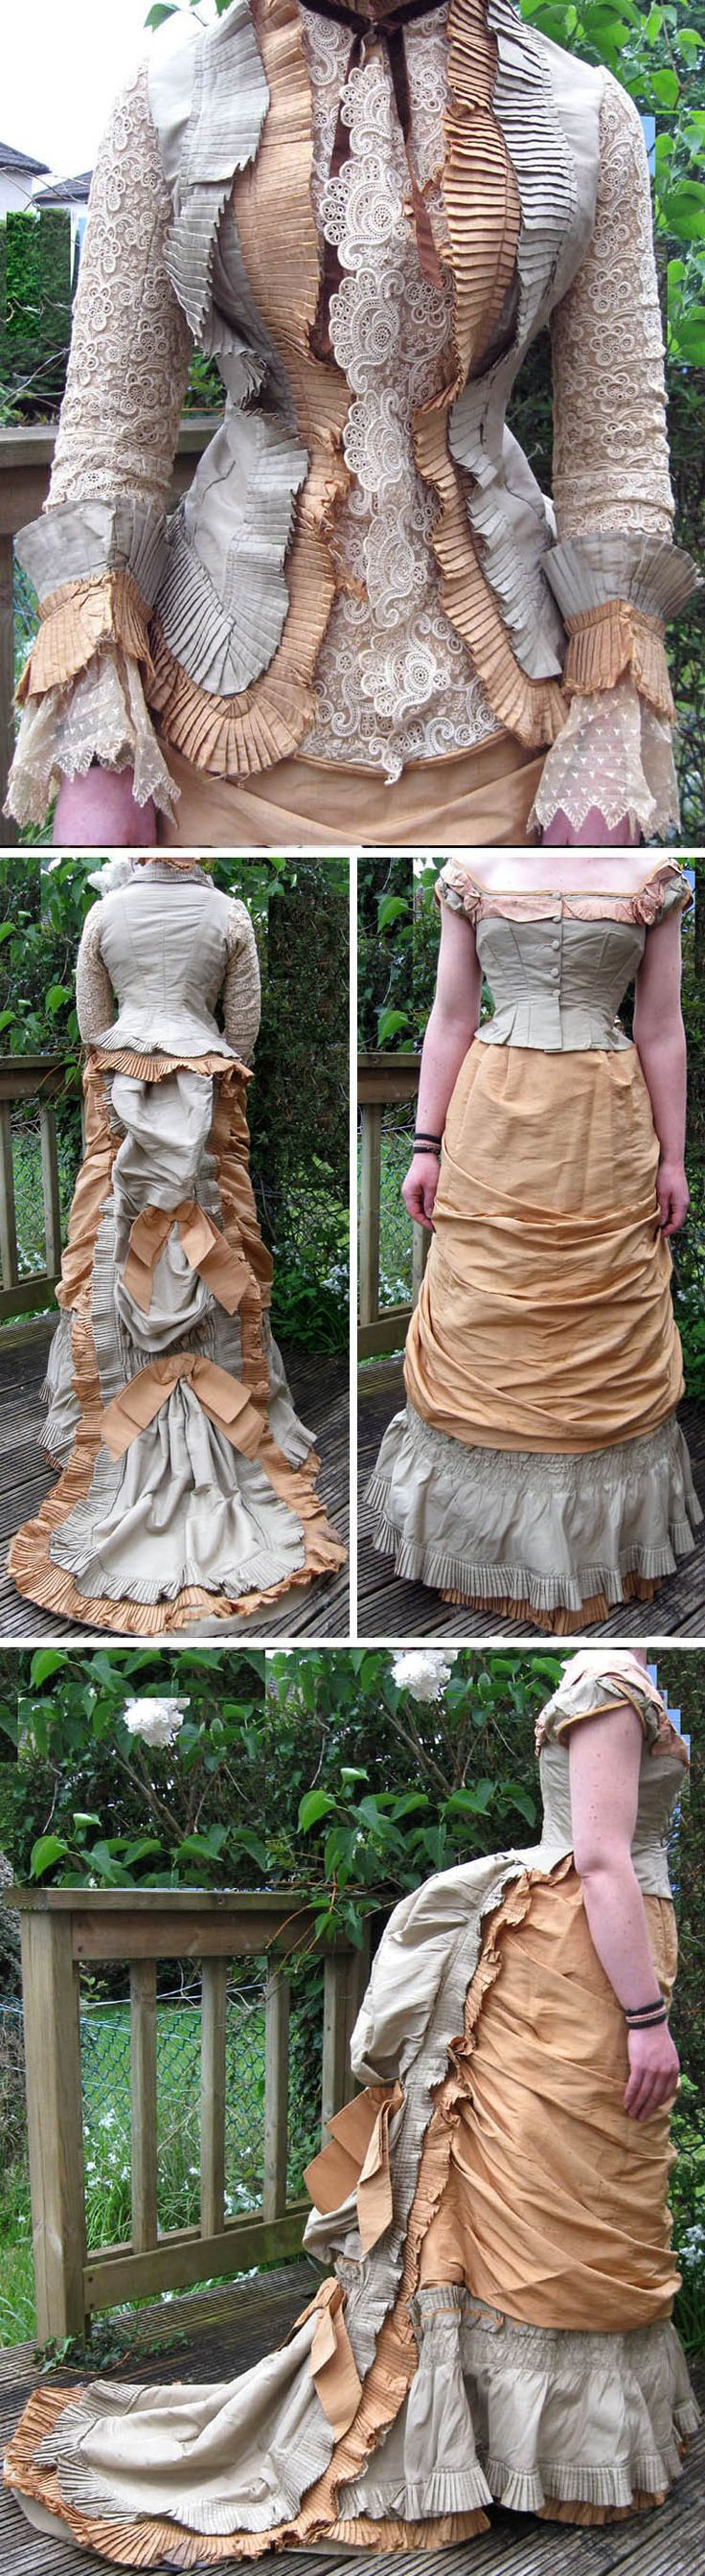 https://www.facebook.com/vintagereseller/app_100265896690345  Three-piece gown ca. 1878. Greenish-gray  beige/sandy-colored silk w/machine-made(?), cream-colored lace and silk  velvet bows. Lined w/cream/beige-colored cotton. Day bodice, not boned, has knife-pleated ruffles, long lace sleeves w/wide cuffs.